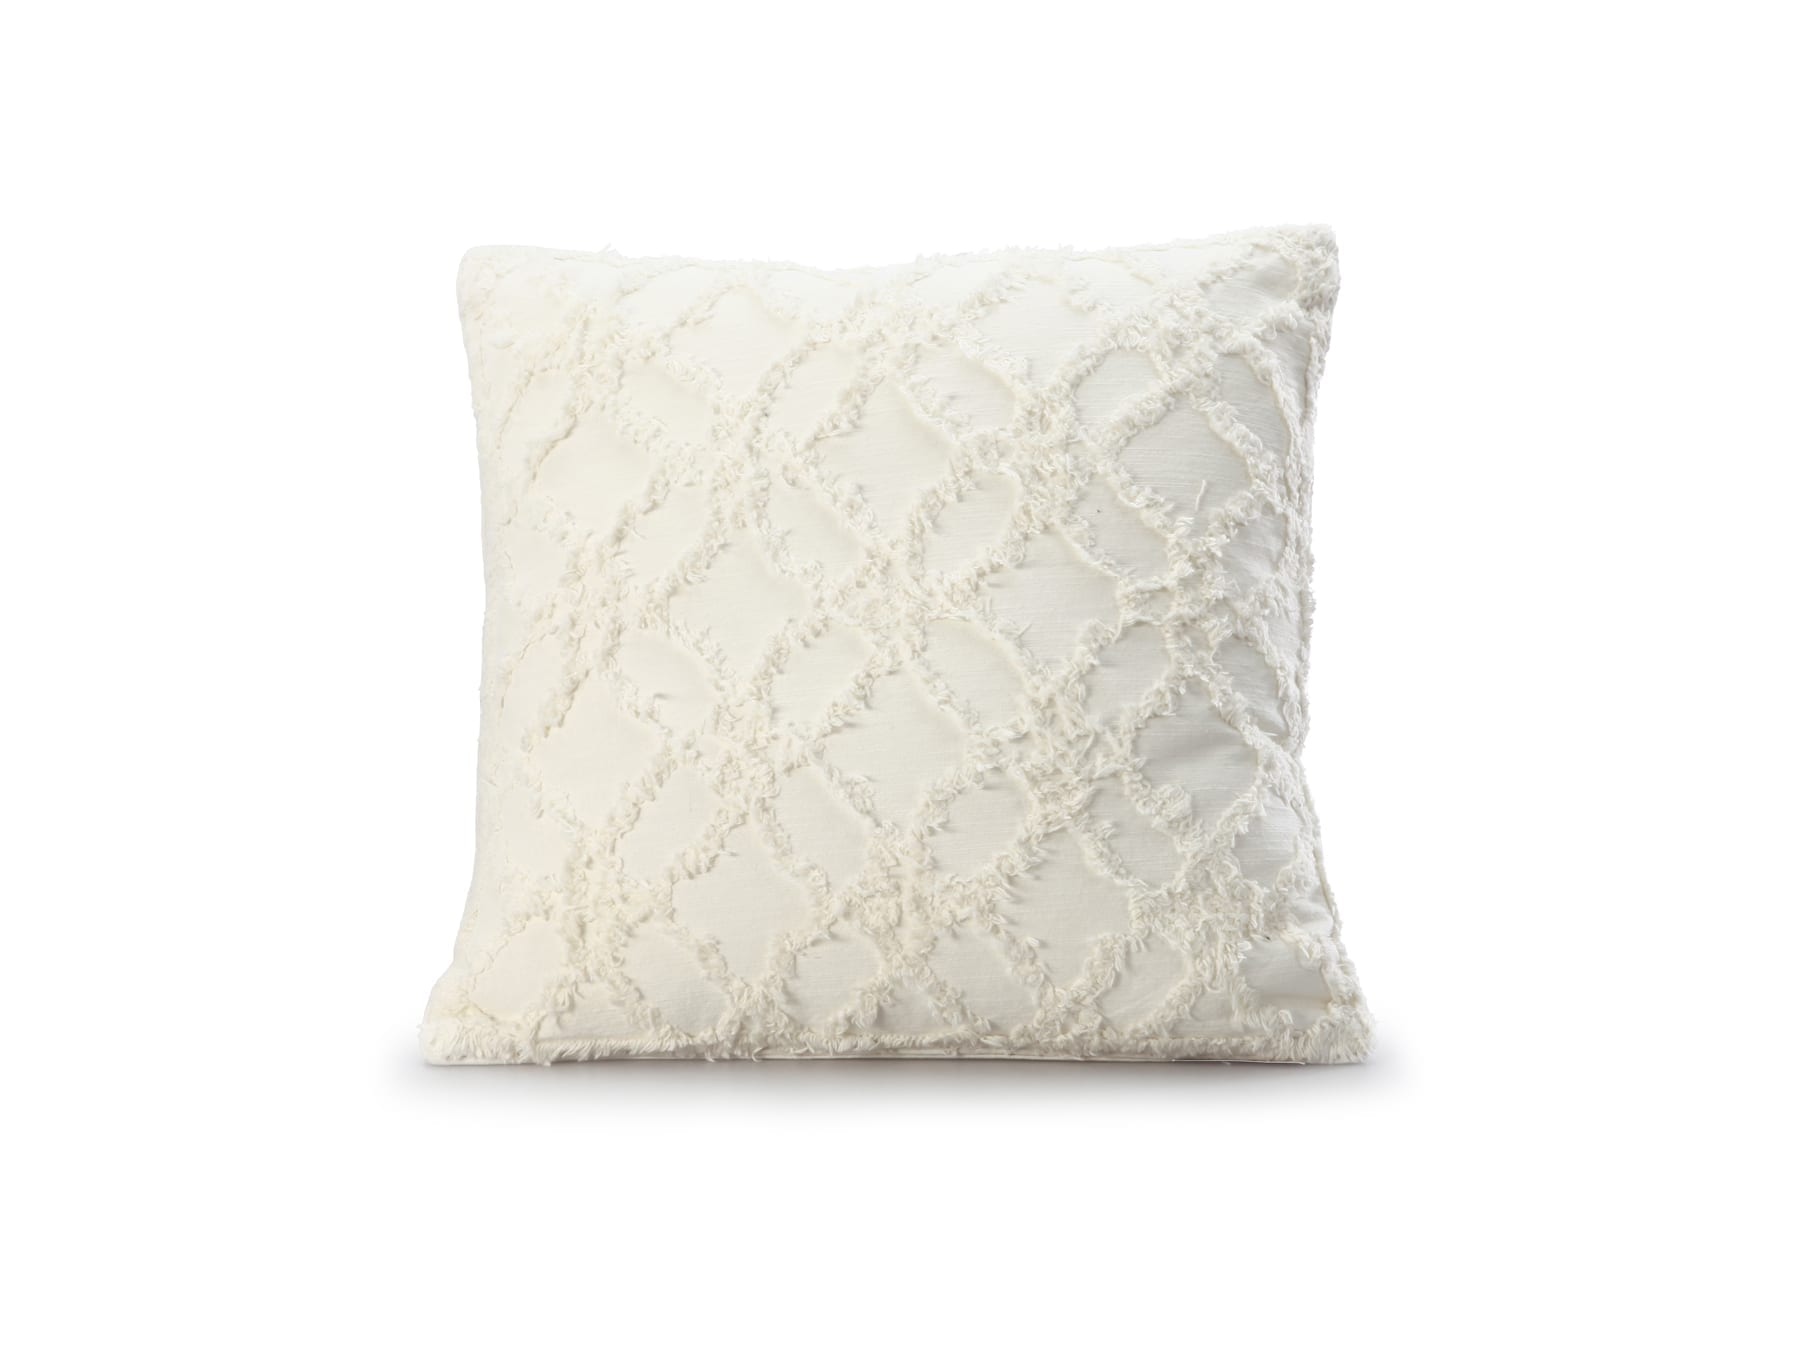 MM Linen Clover Cushion Square in Ivory available at McKenzie & Willis